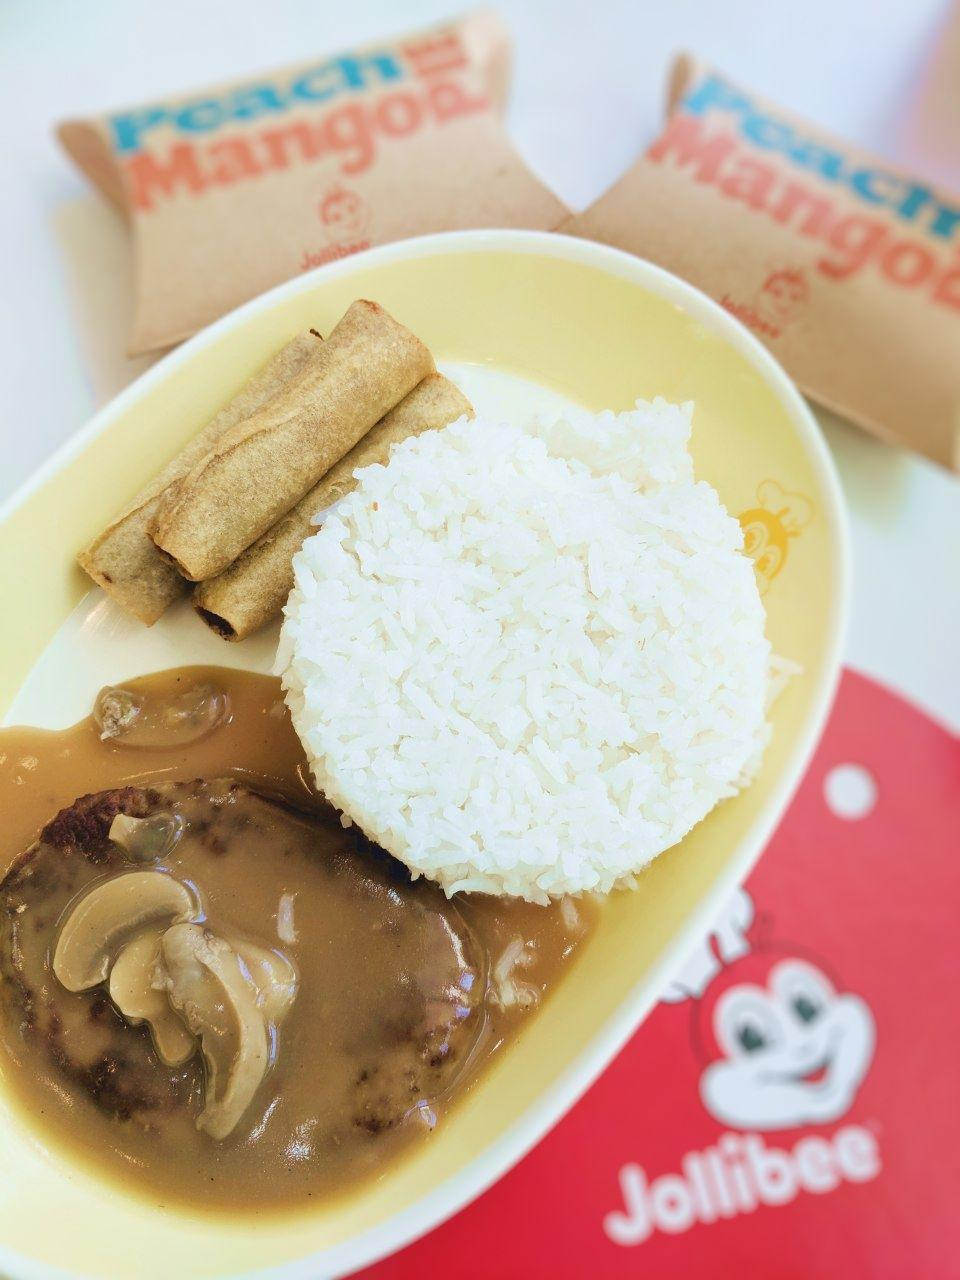 1-pc Burger Steak w/ 3pcs Shanghai